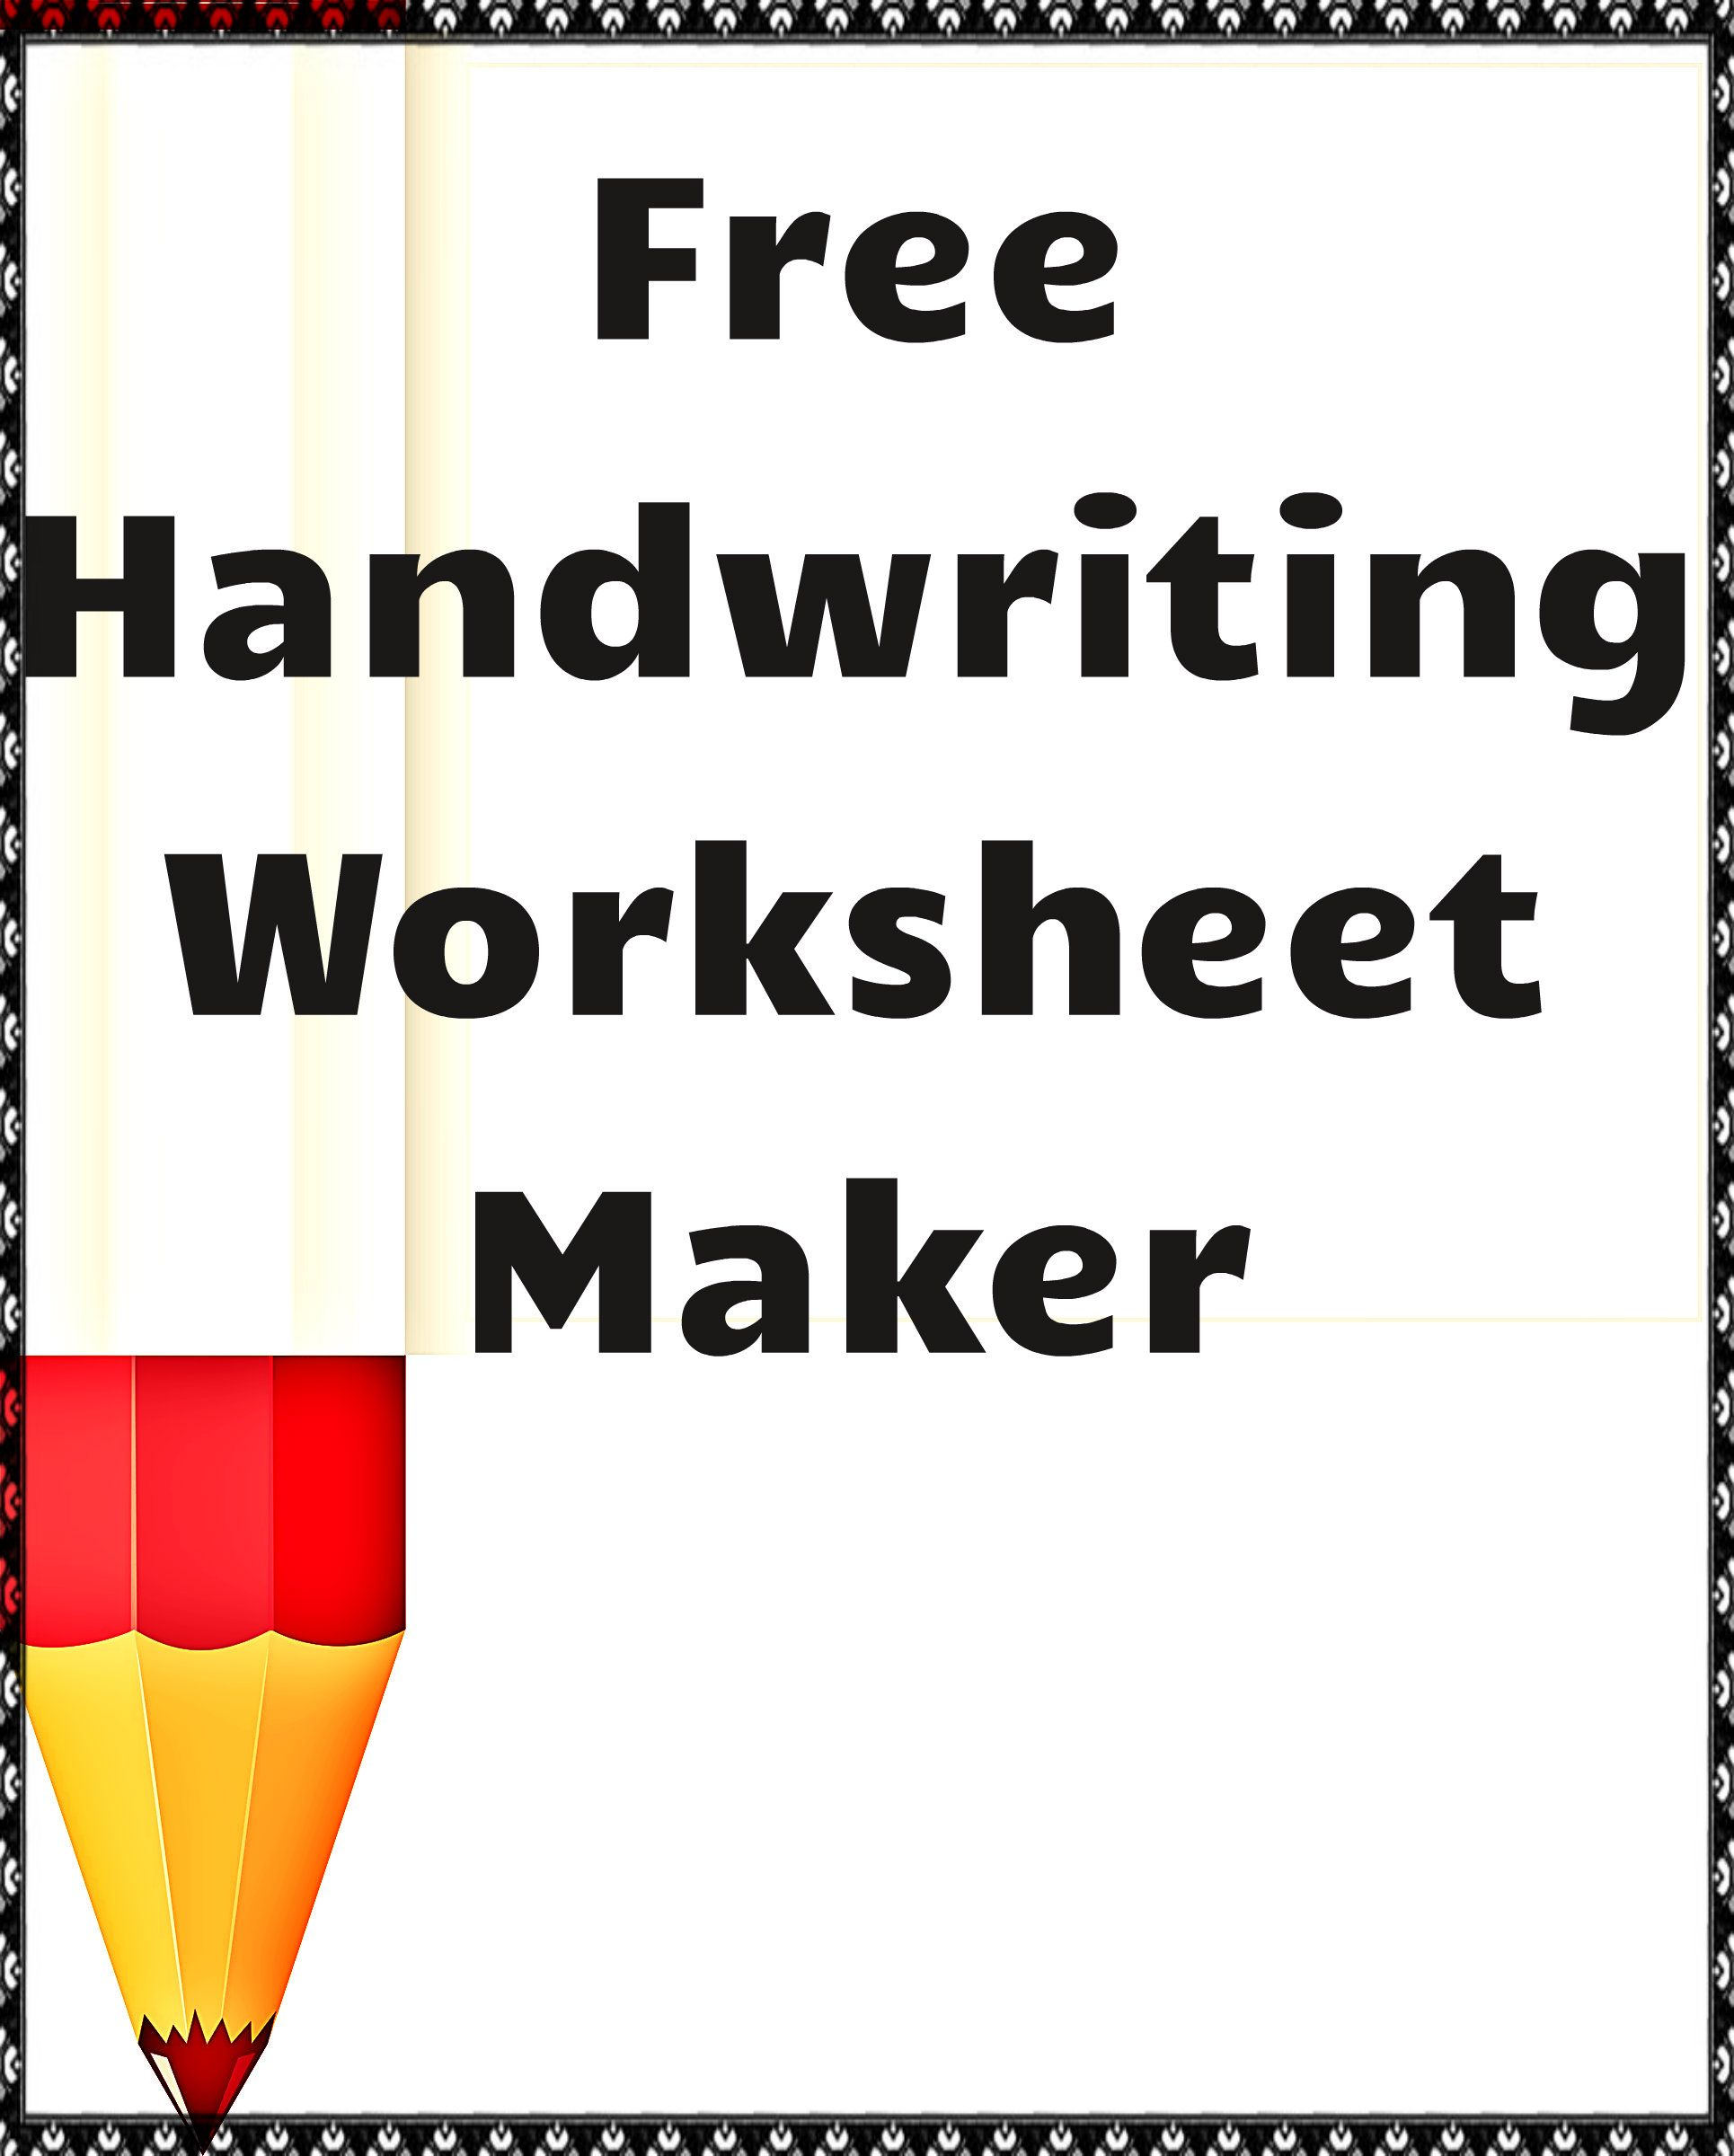 Worksheets Make Tracing Worksheets create traceable worksheets common printable handwriting preschool and create